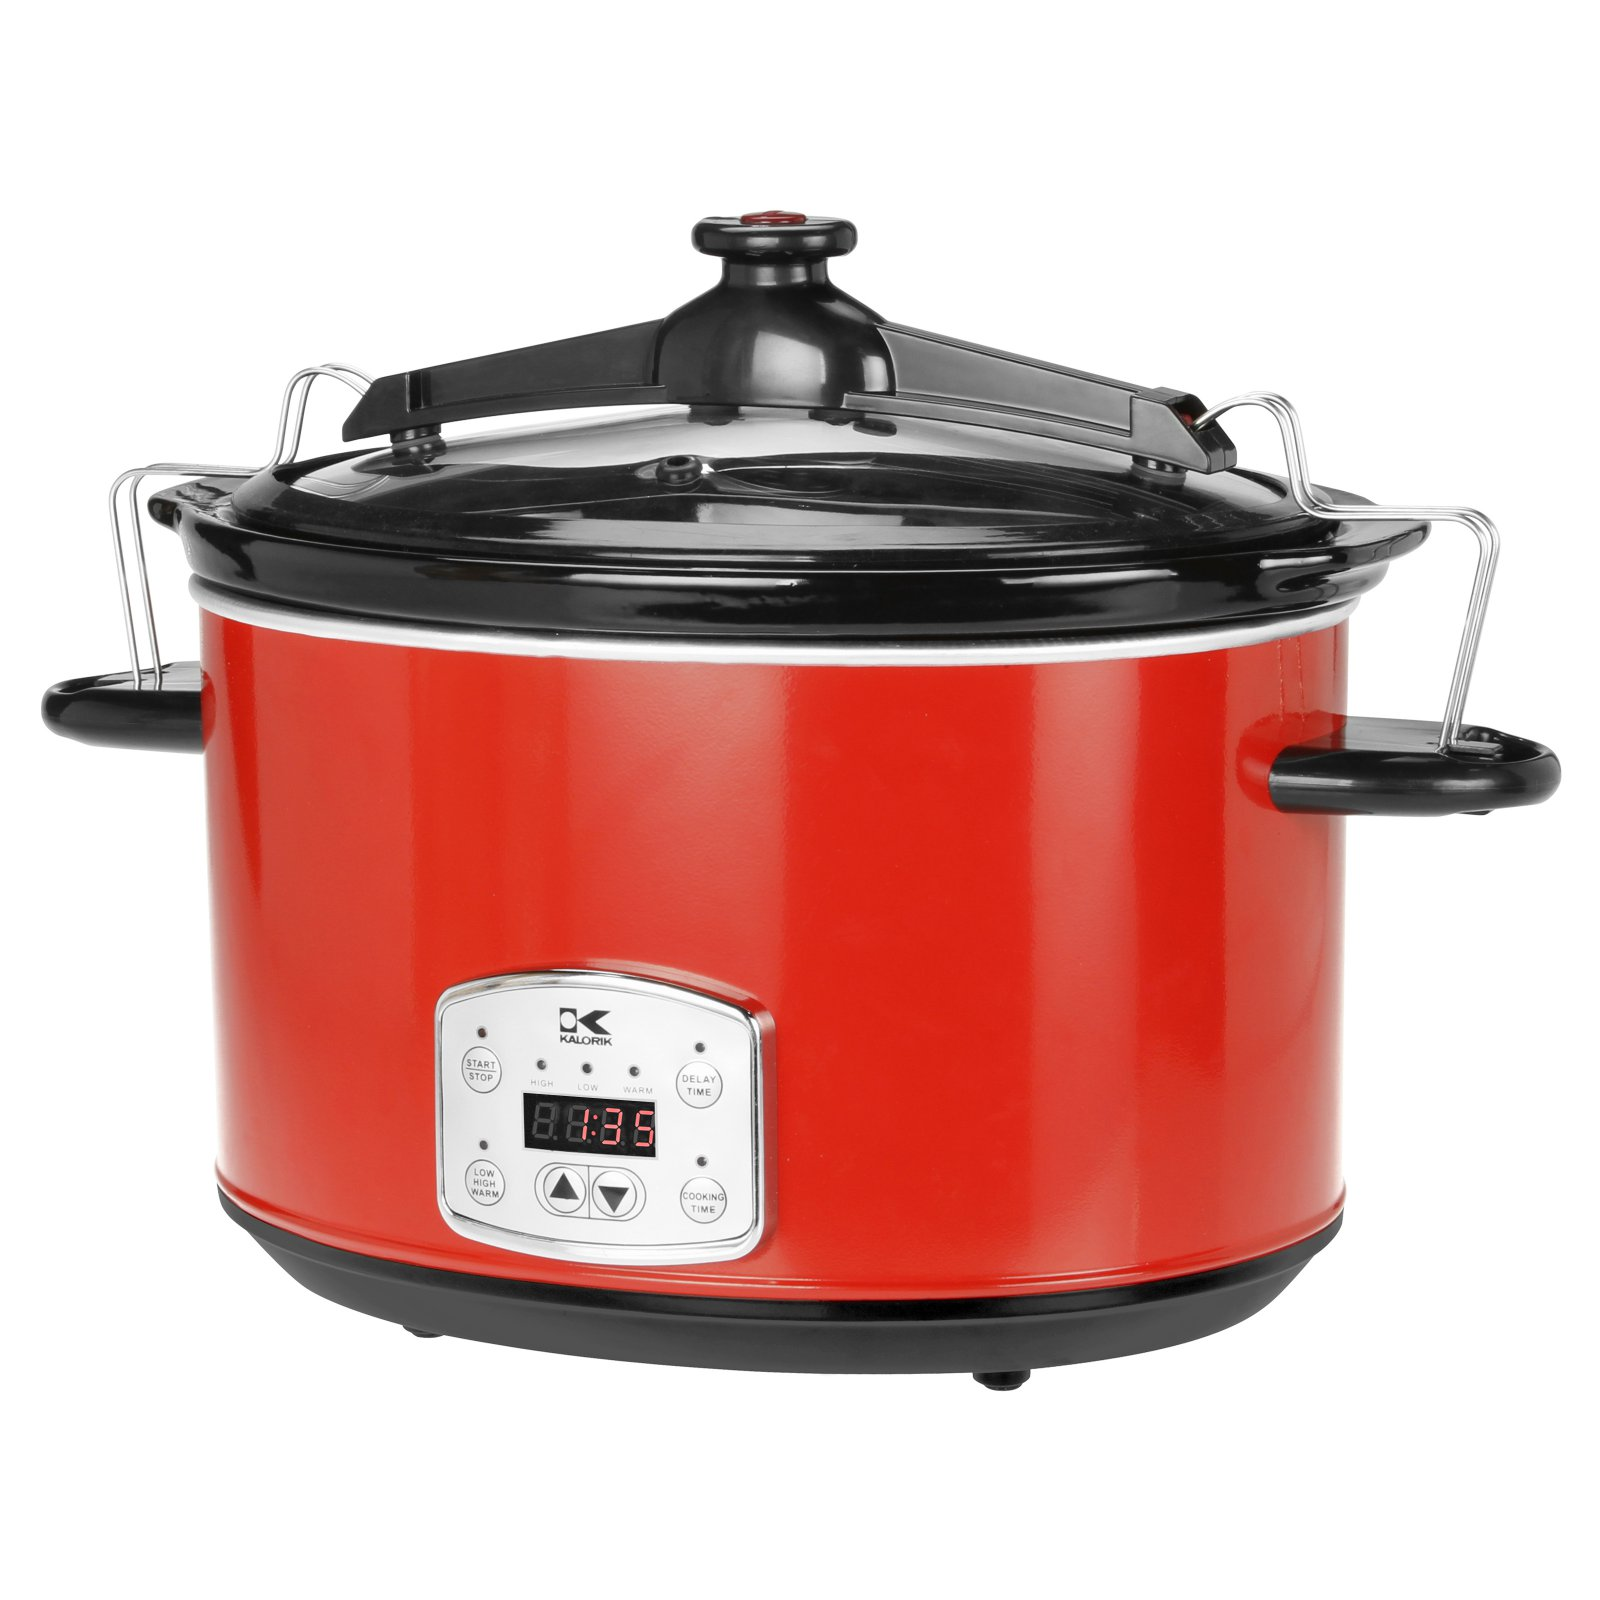 Kalorik 8-Qt Digital Slow Cooker with Locking Lid, Red